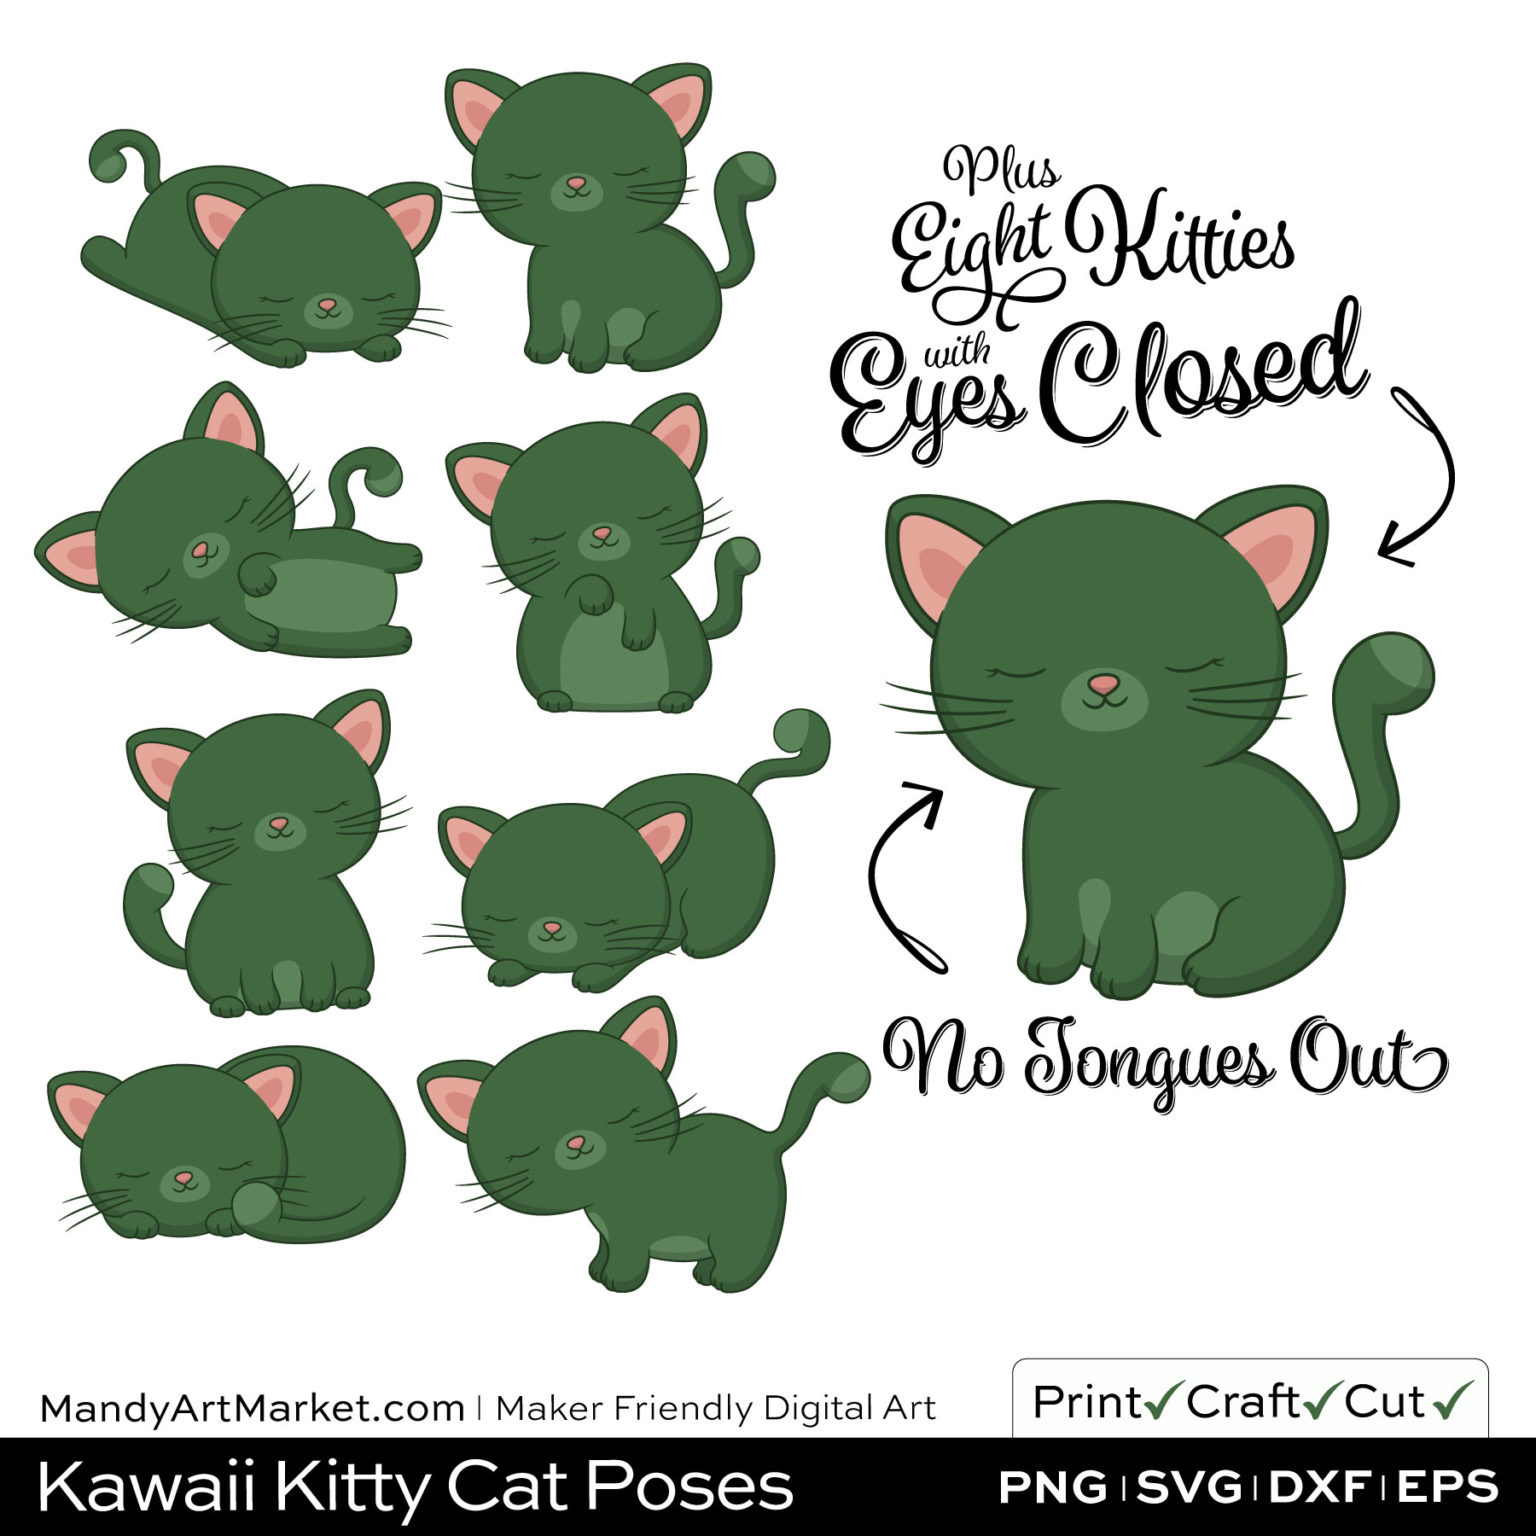 Hemlock Green Kawaii Kitty Cat Poses Clipart PNGs Included in Download